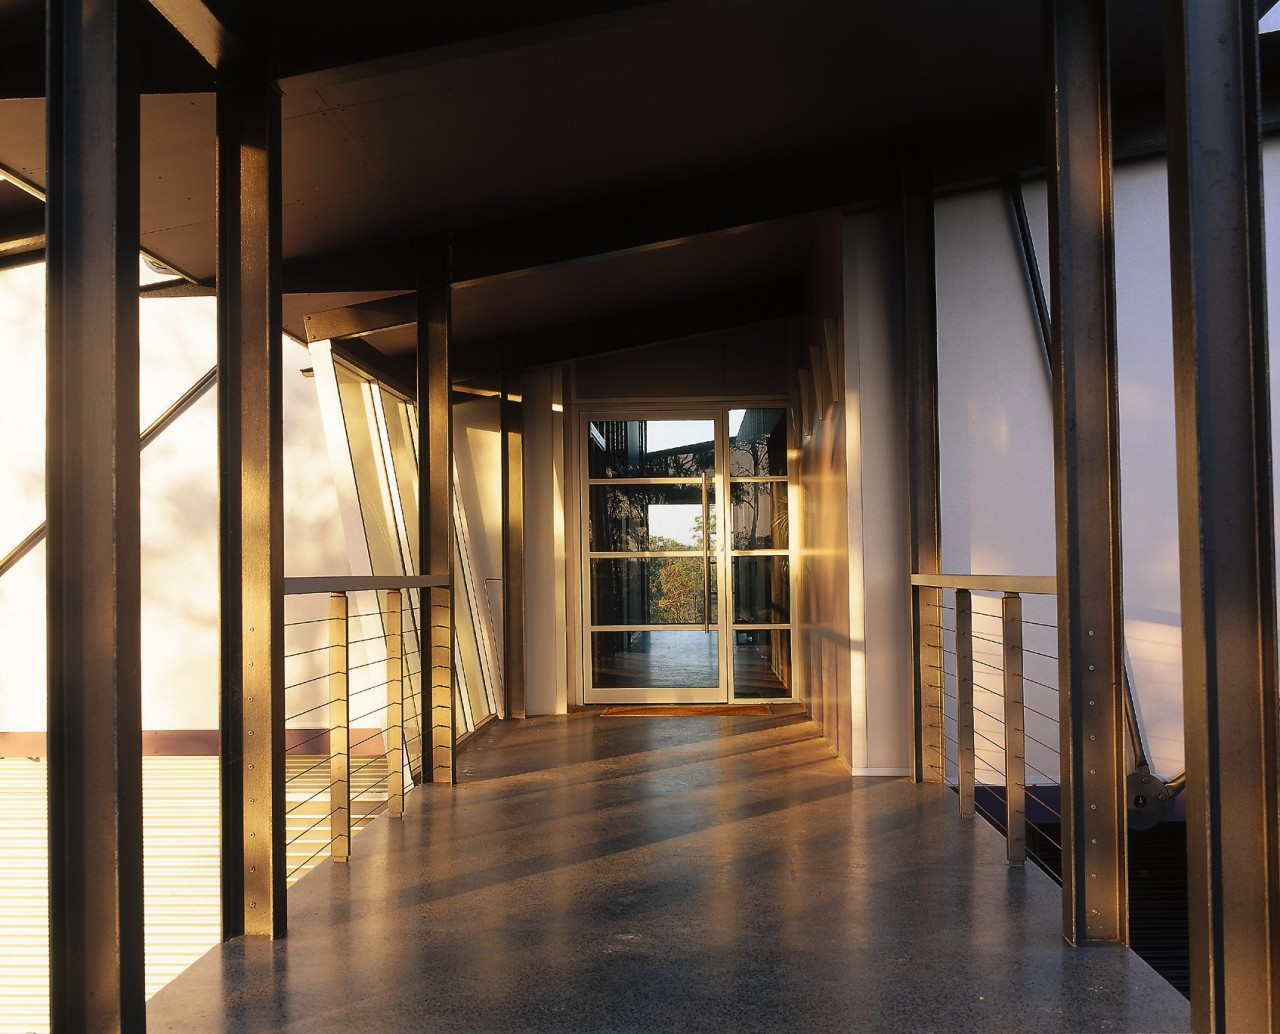 View of the passage way that connects the architecture, interior design, lobby, window, black